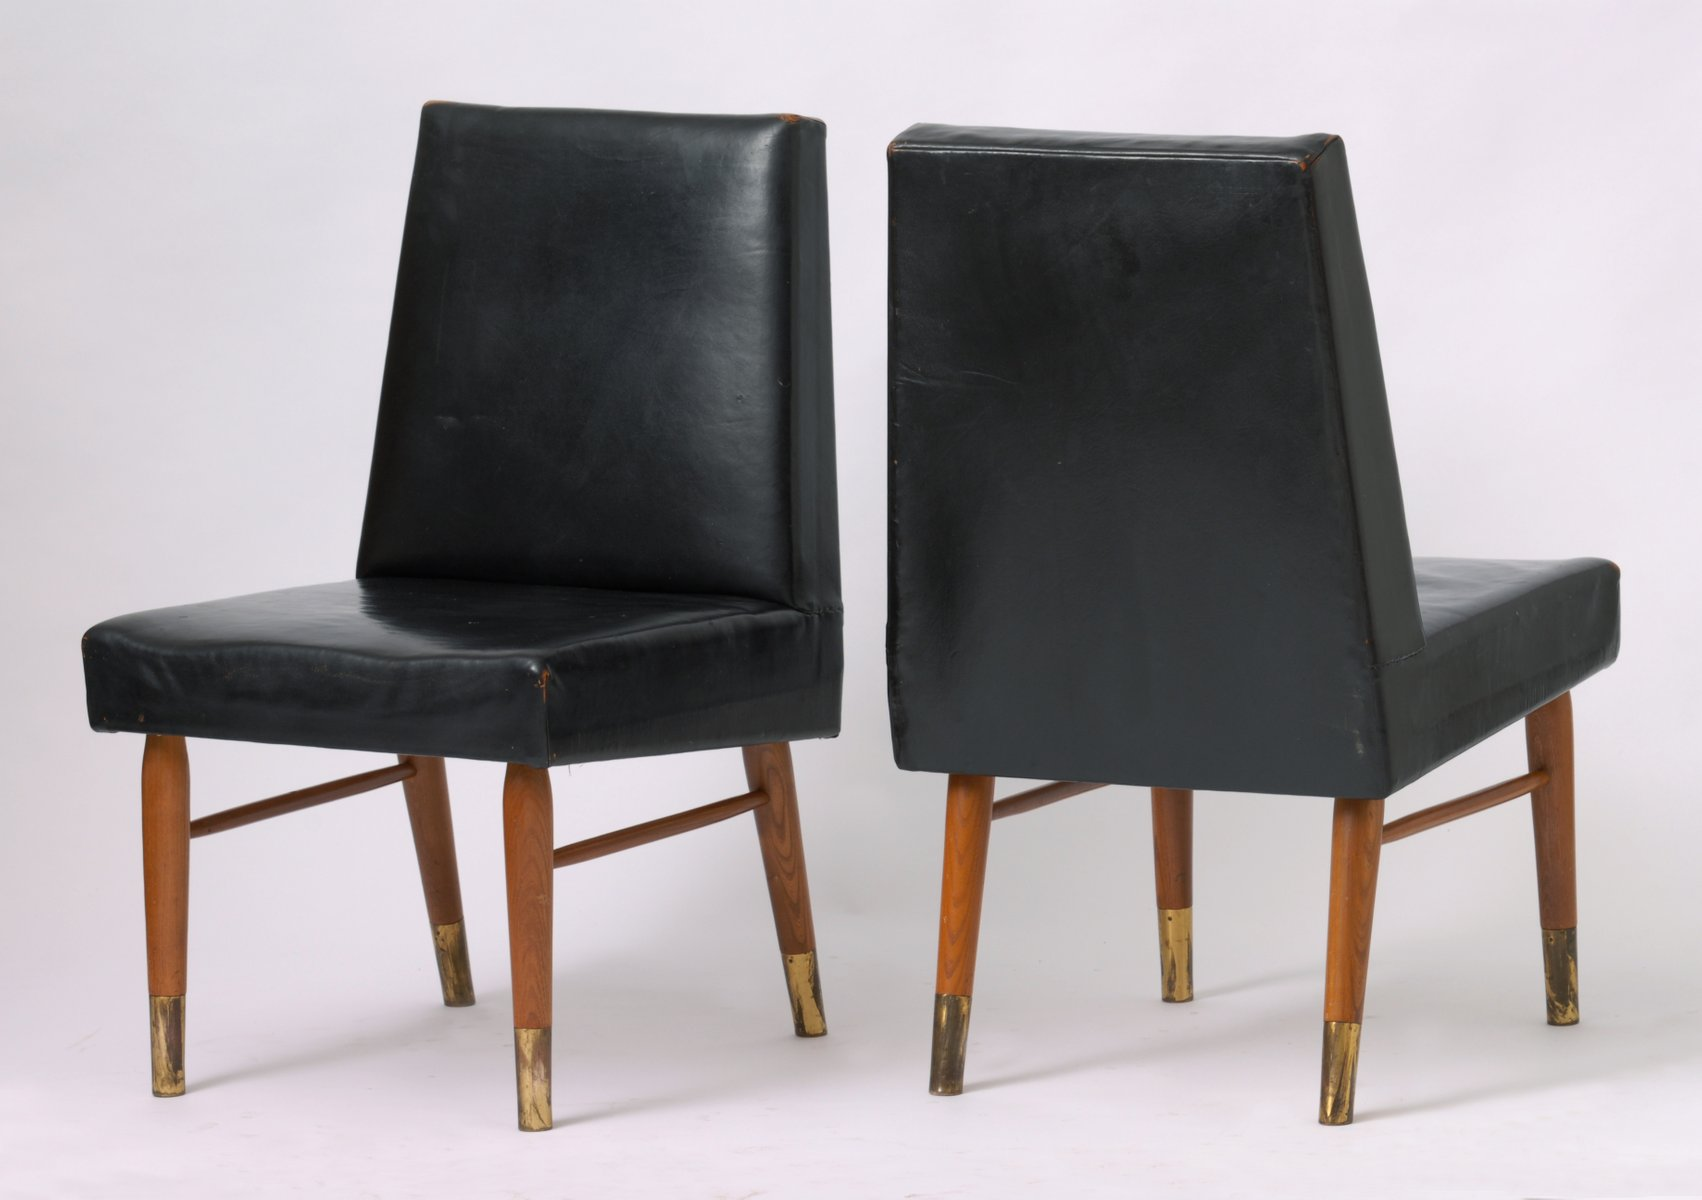 Vintage Black Leather Chairs Set of 2 for sale at Pamono